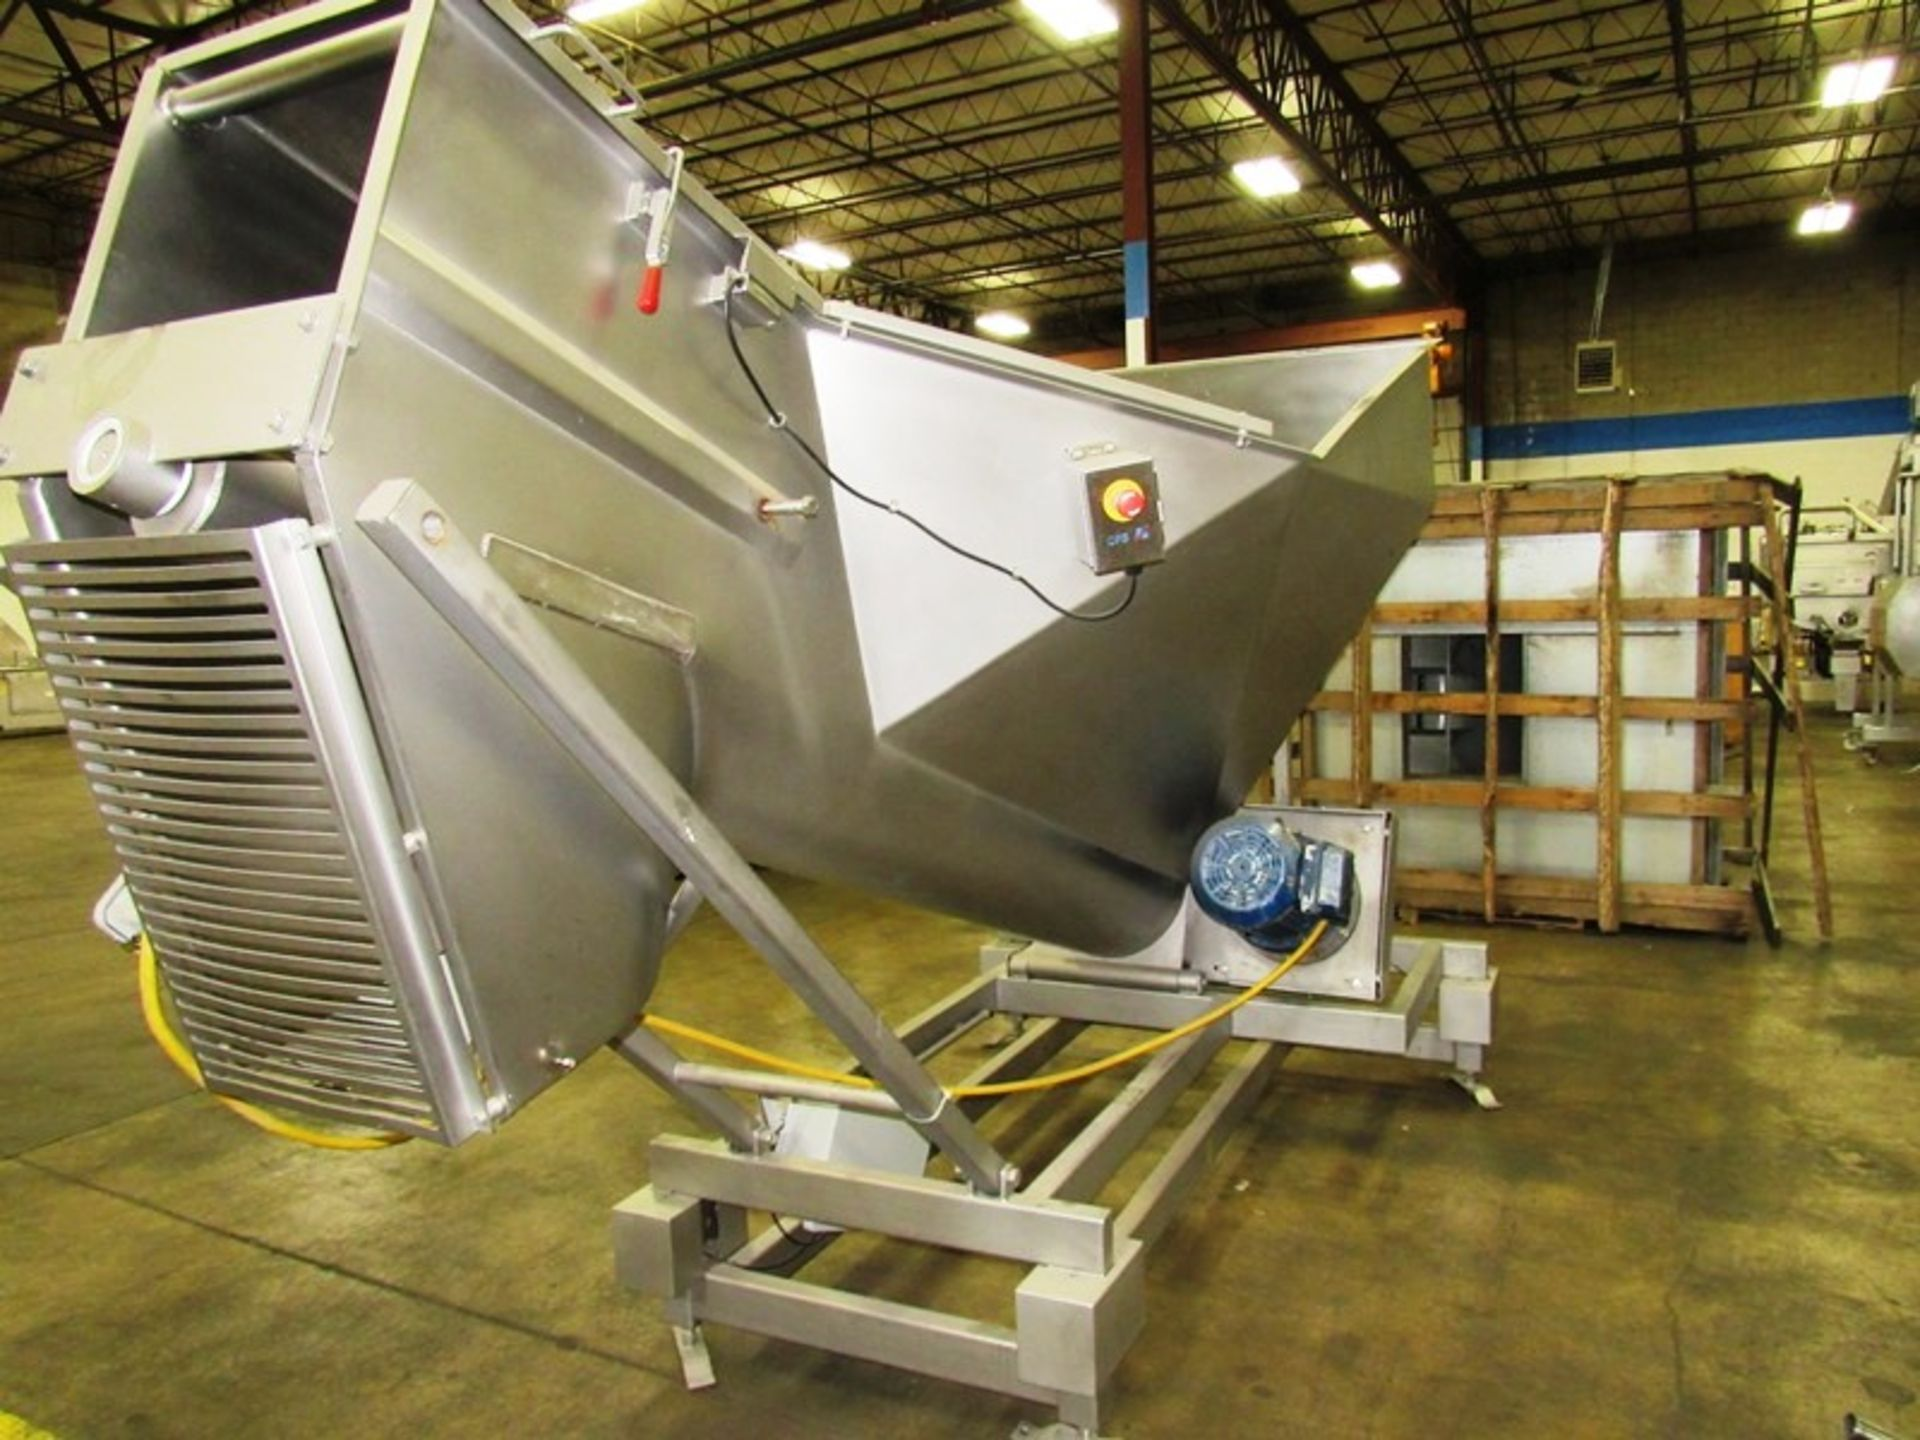 """Stainless Steel Screw Loader, 16"""" Dia. X 8' L stainless steel screw, 5' W X 5' L load hopper, 15 h. - Image 4 of 7"""